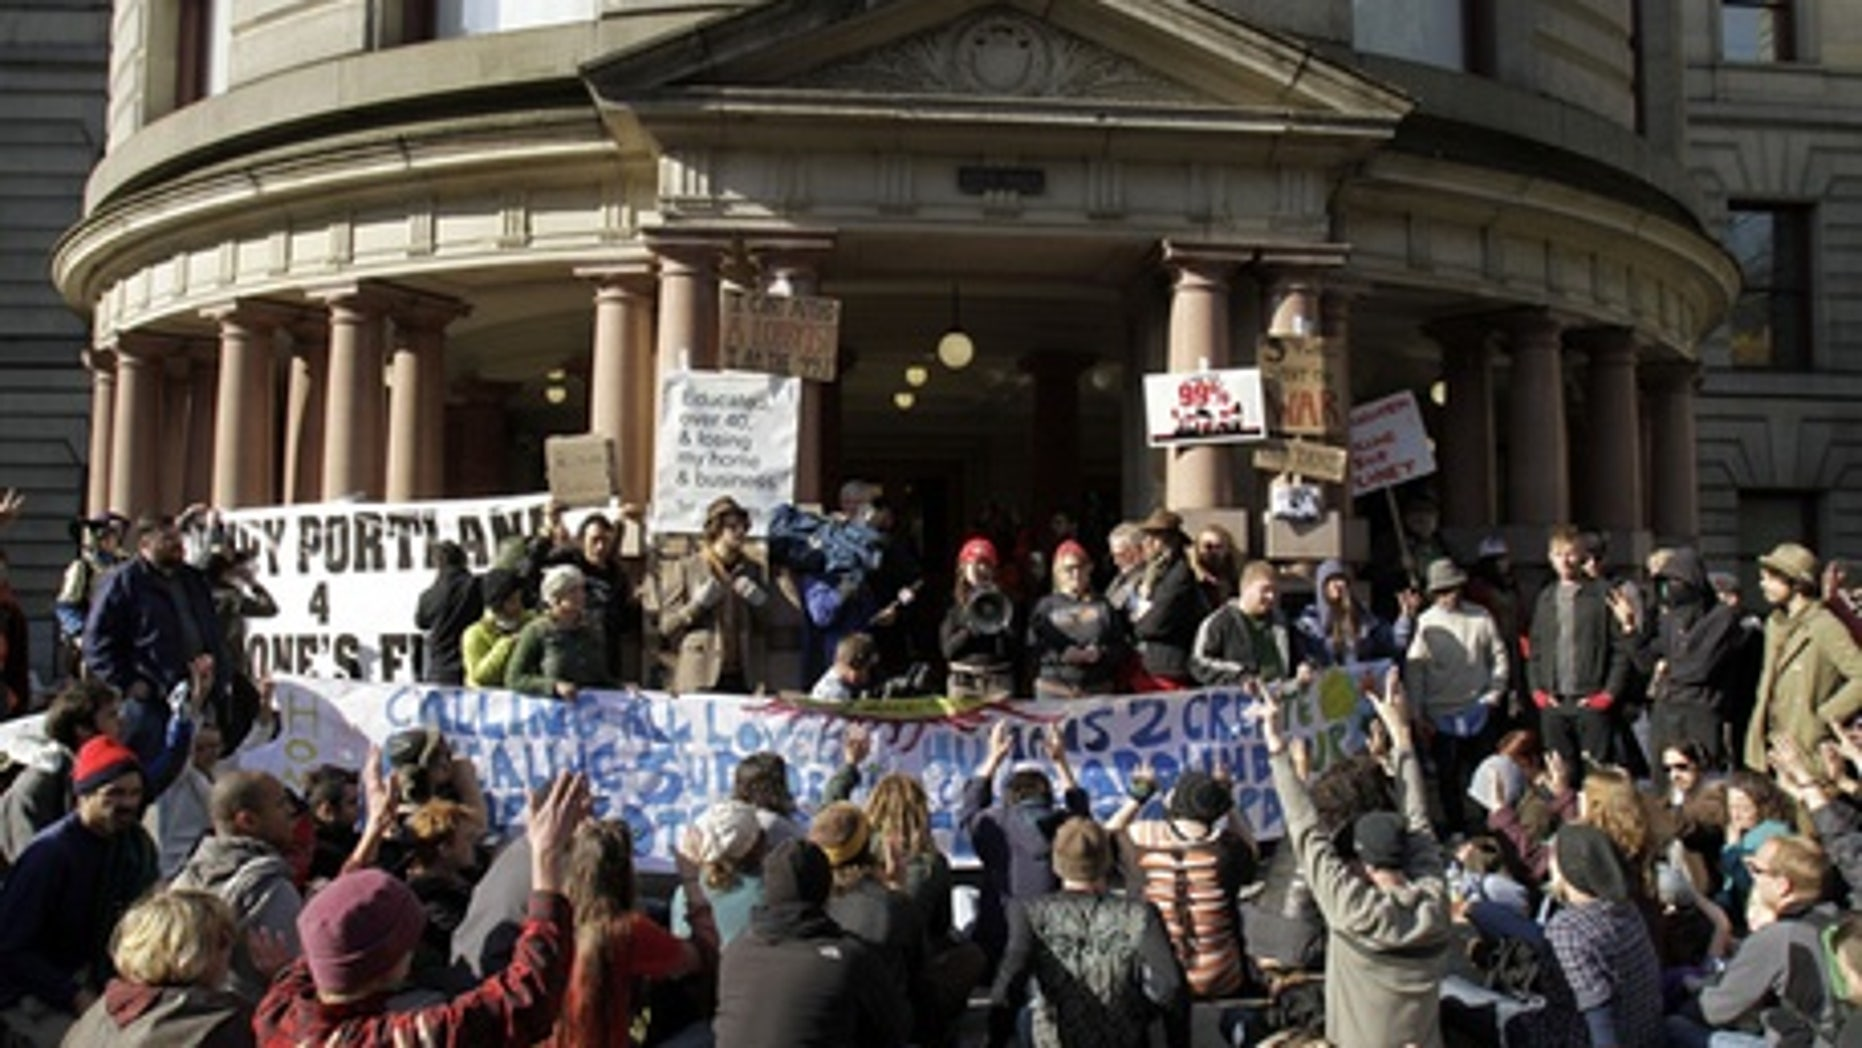 November 2011: Occupy Portland protesters gather outside City Hall.